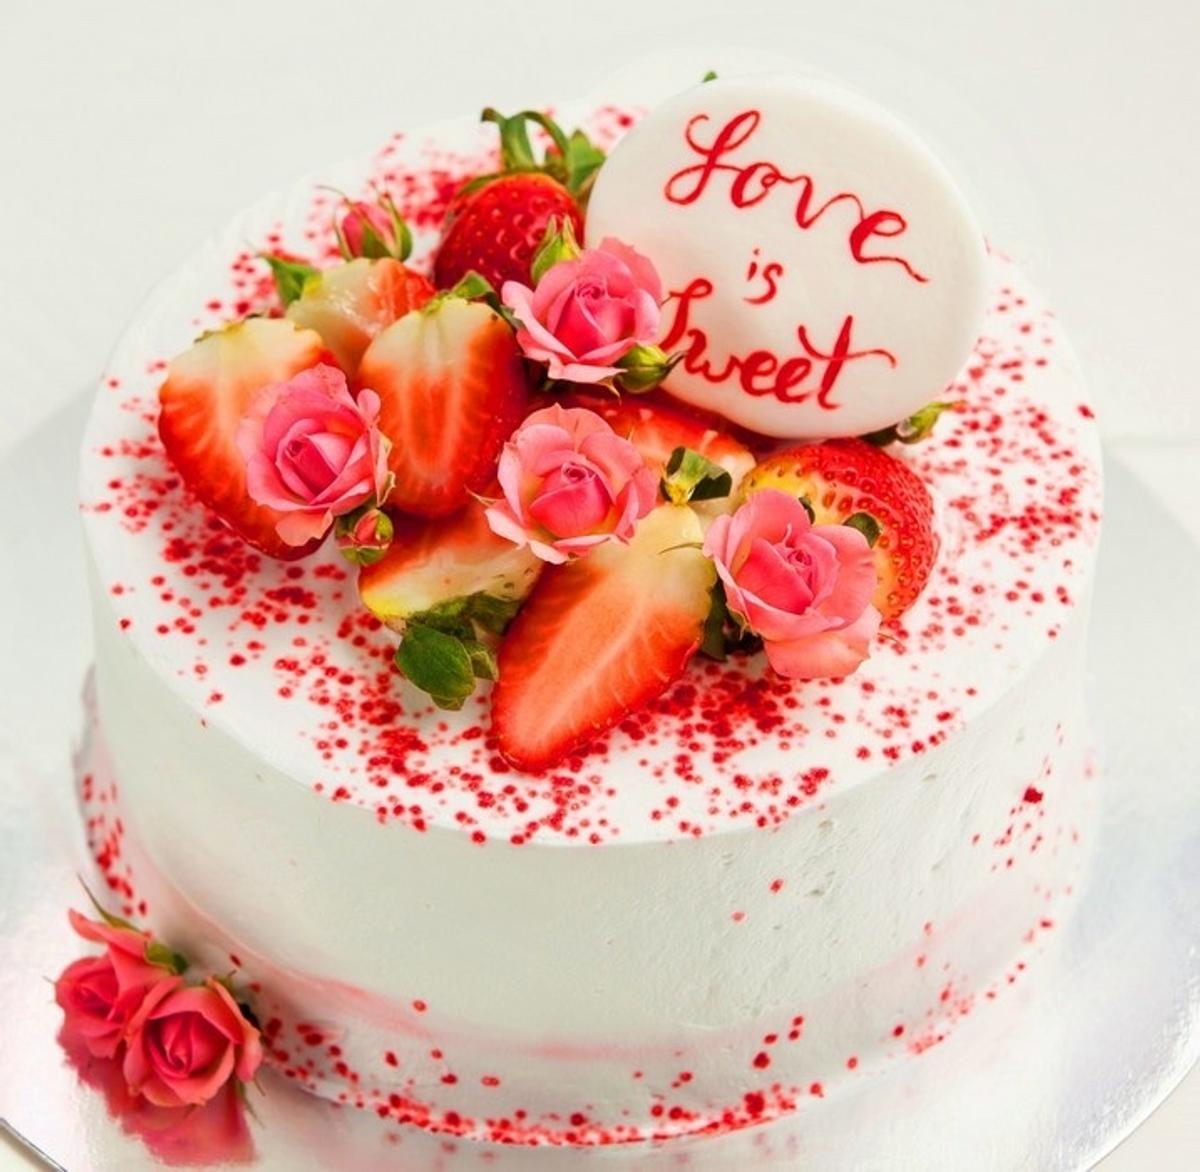 Astounding Ordering Cakes Valentines Day And Birthday In Ig10 Forest For Birthday Cards Printable Riciscafe Filternl